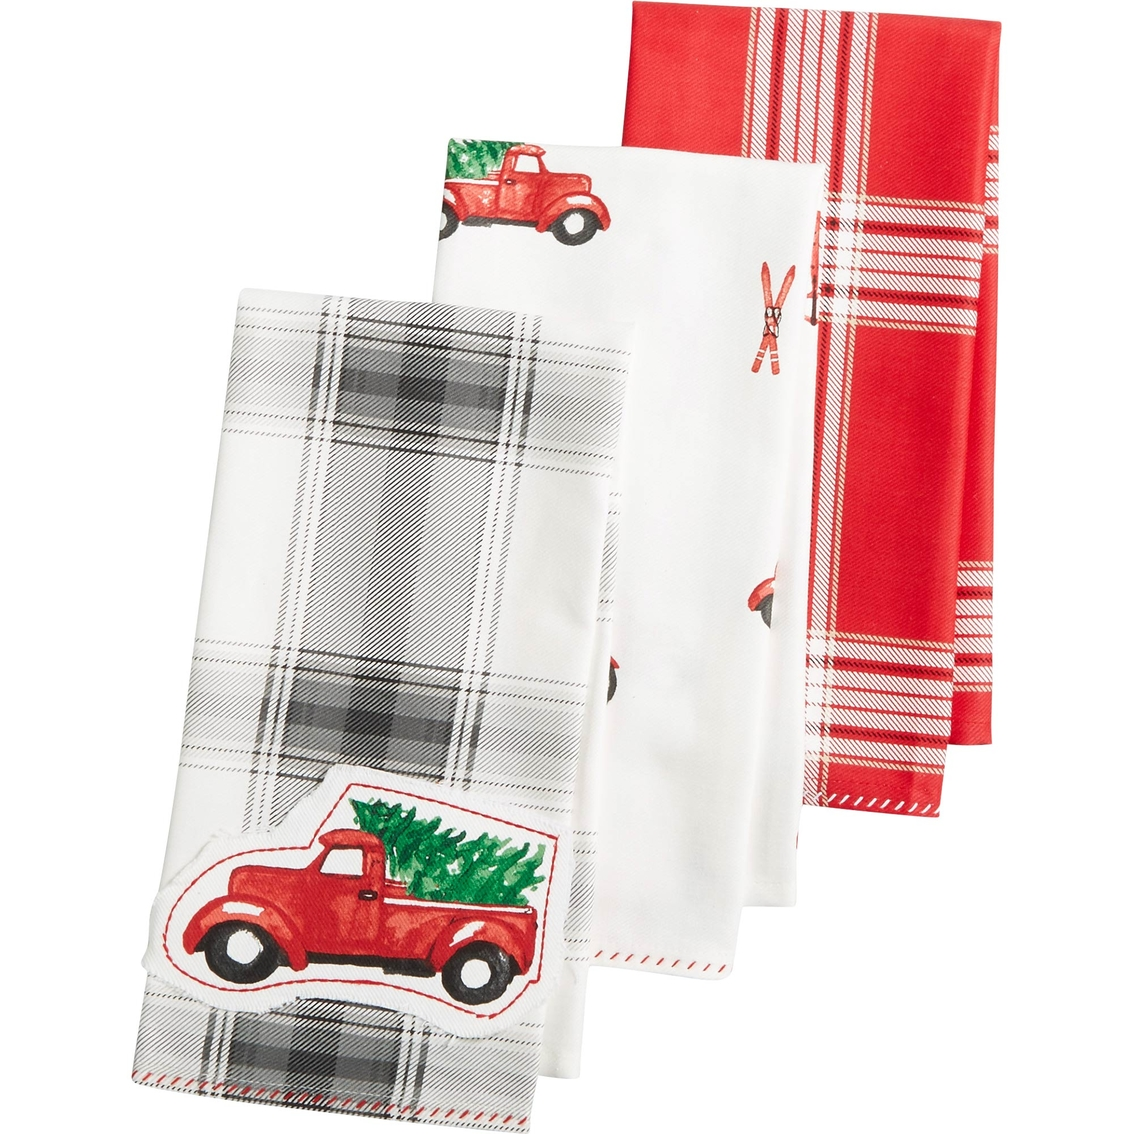 martha stewart kitchen towels design layout ideas collection 3 pc holiday towel set